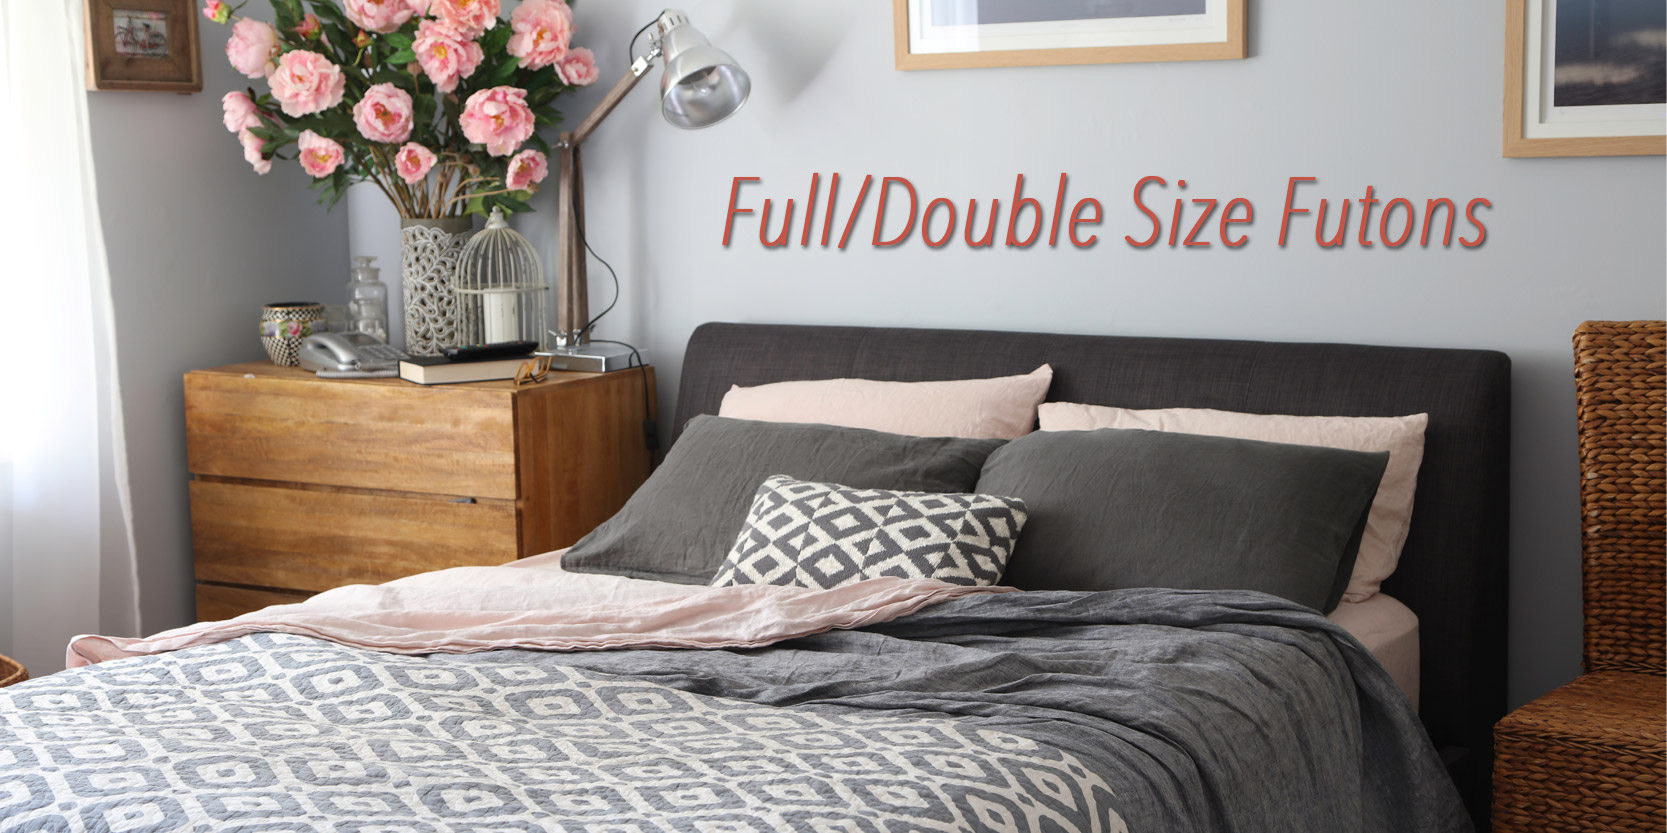 Full Double Bed Blog Shopping Guide Bedroom And Modern Full Double Size Futon